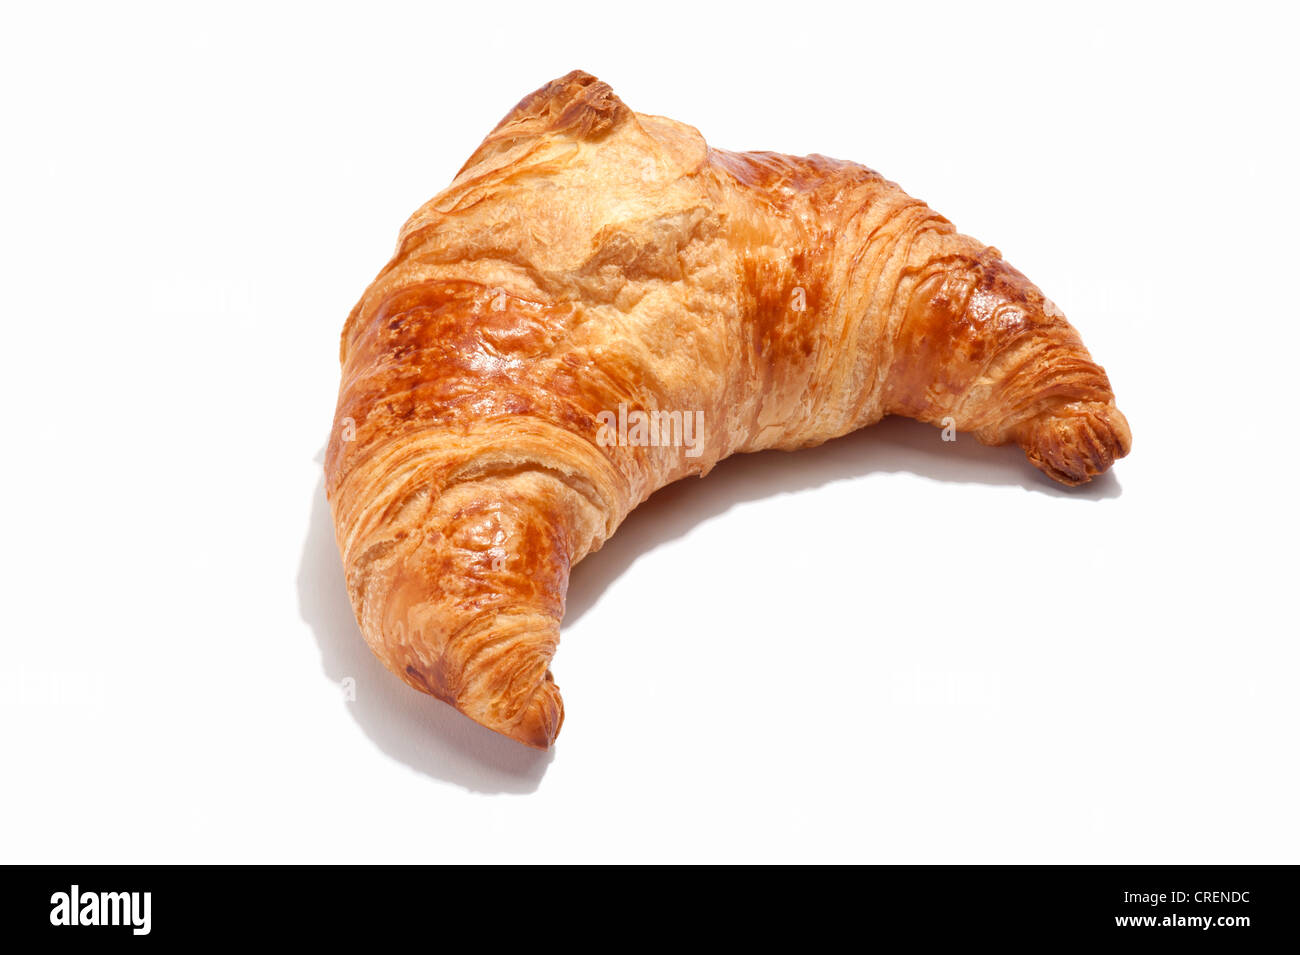 A croissant - Stock Image